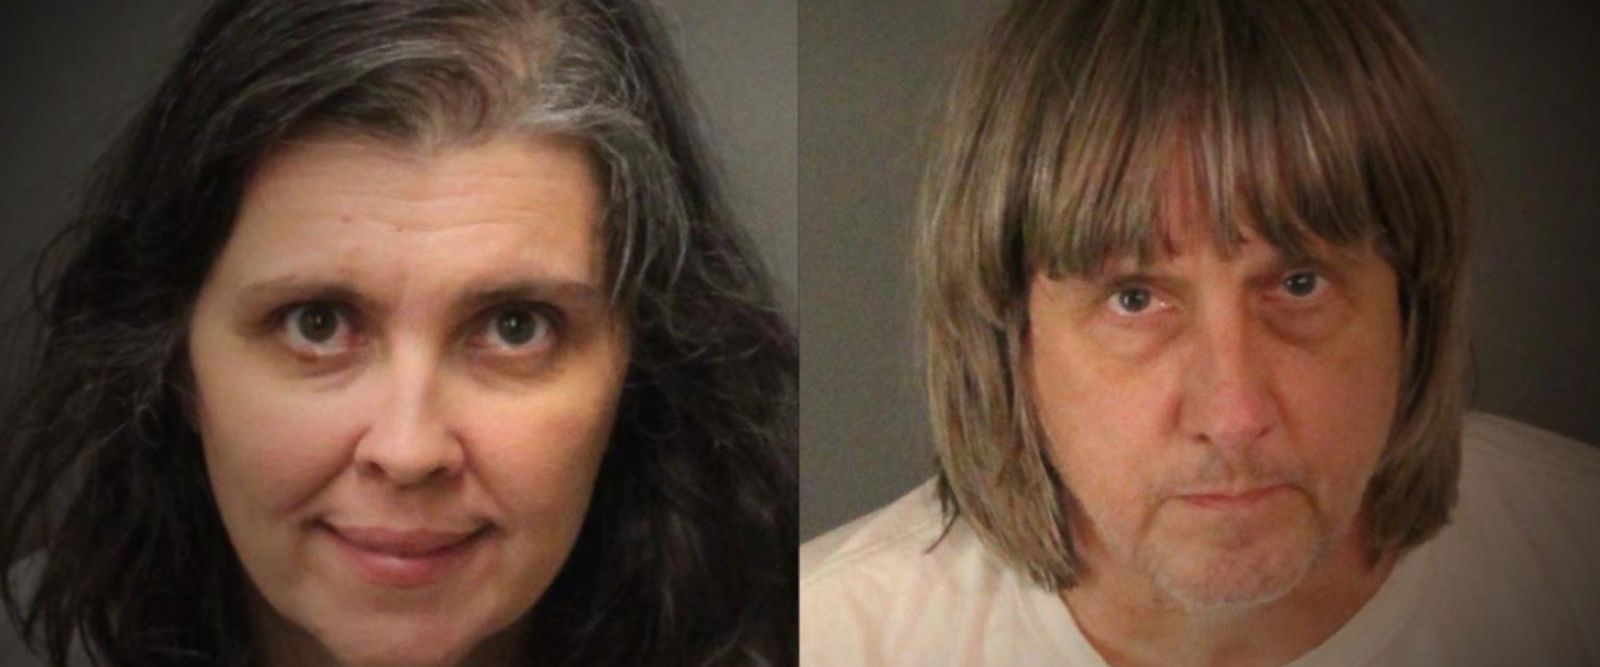 VIDEO: Parents charged in torture allegedly held 13 siblings 'captive': Officials